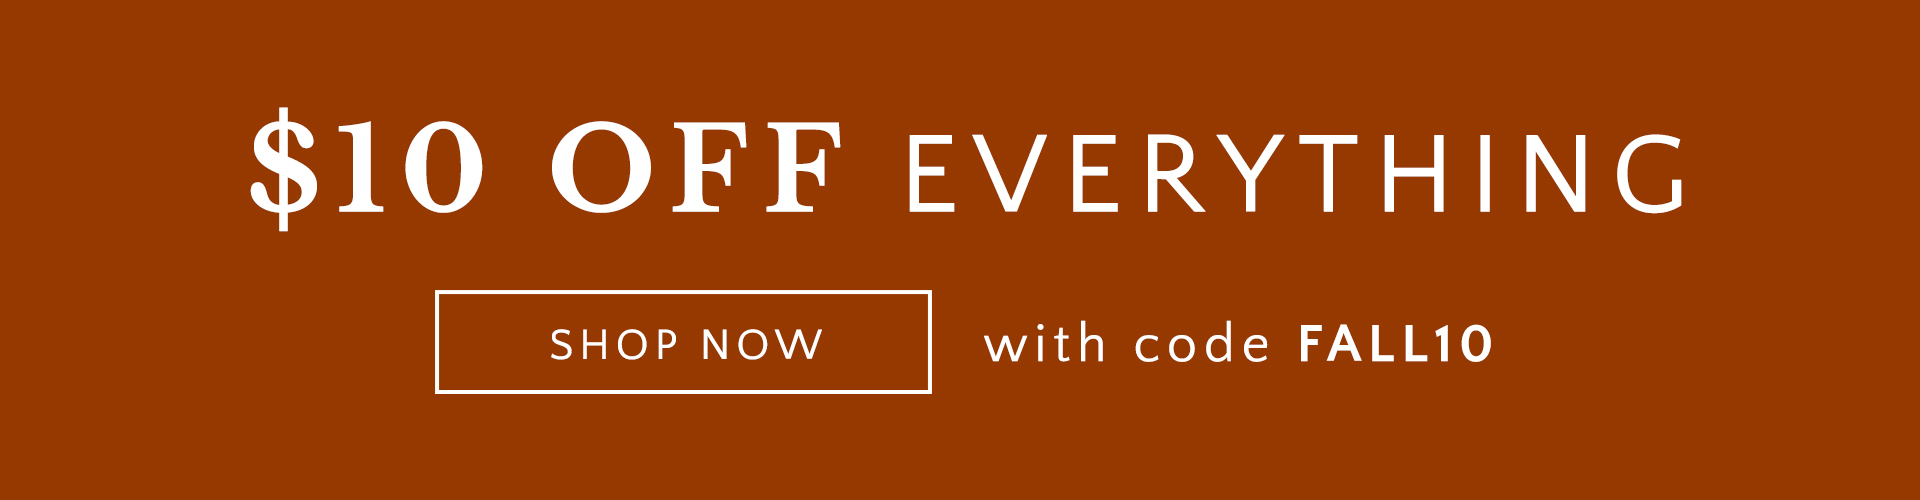 $10 OFF EVERYTHING SHOP NOW with code FALL10